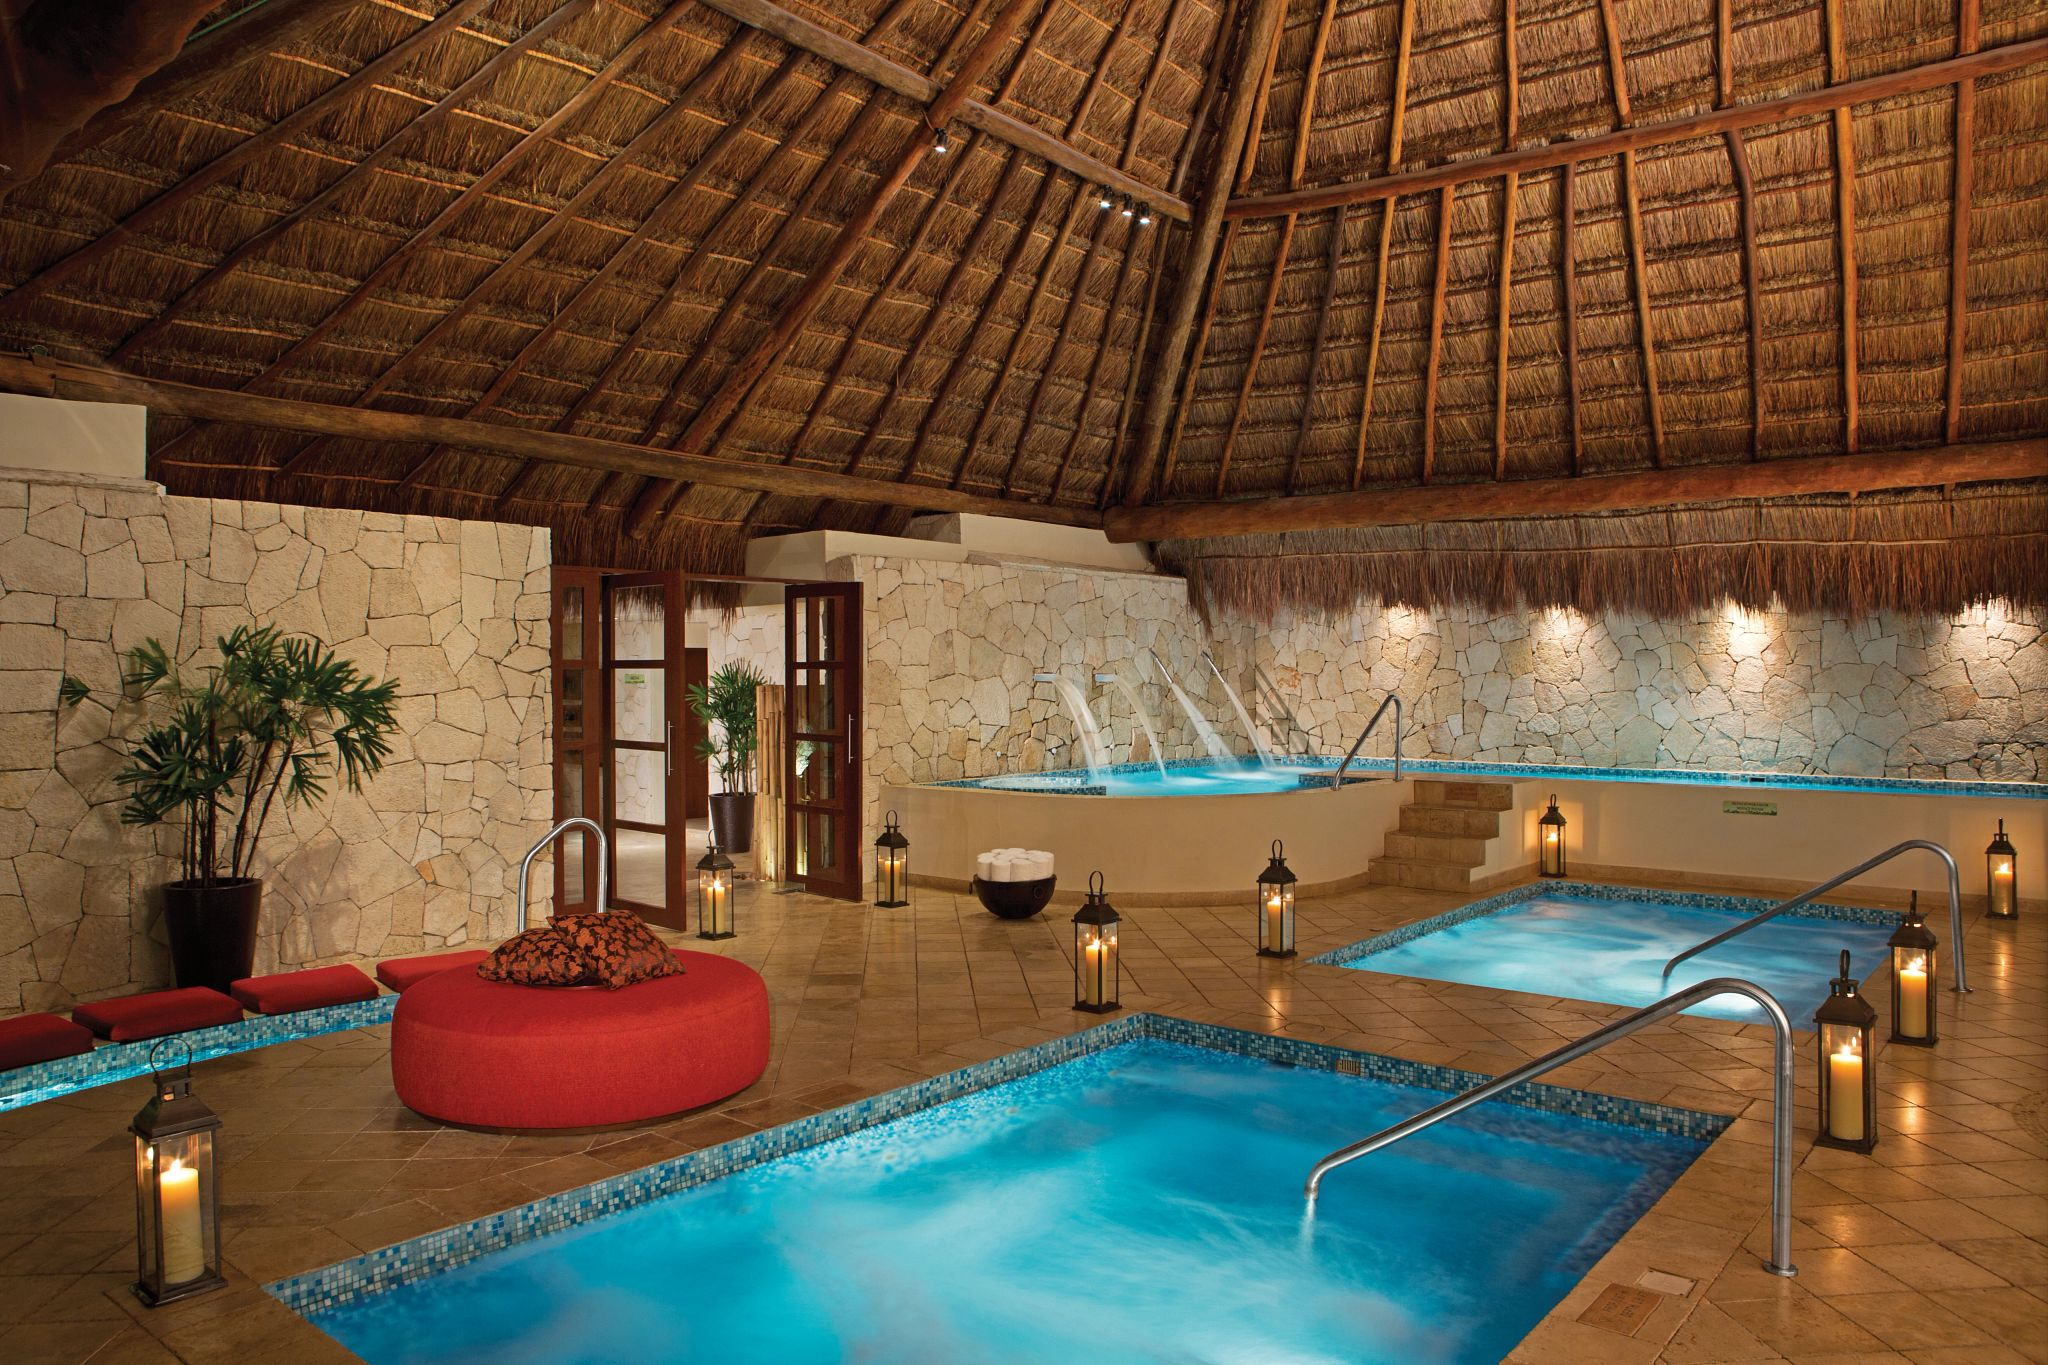 spa Hydrotherapy circuit lit by candles